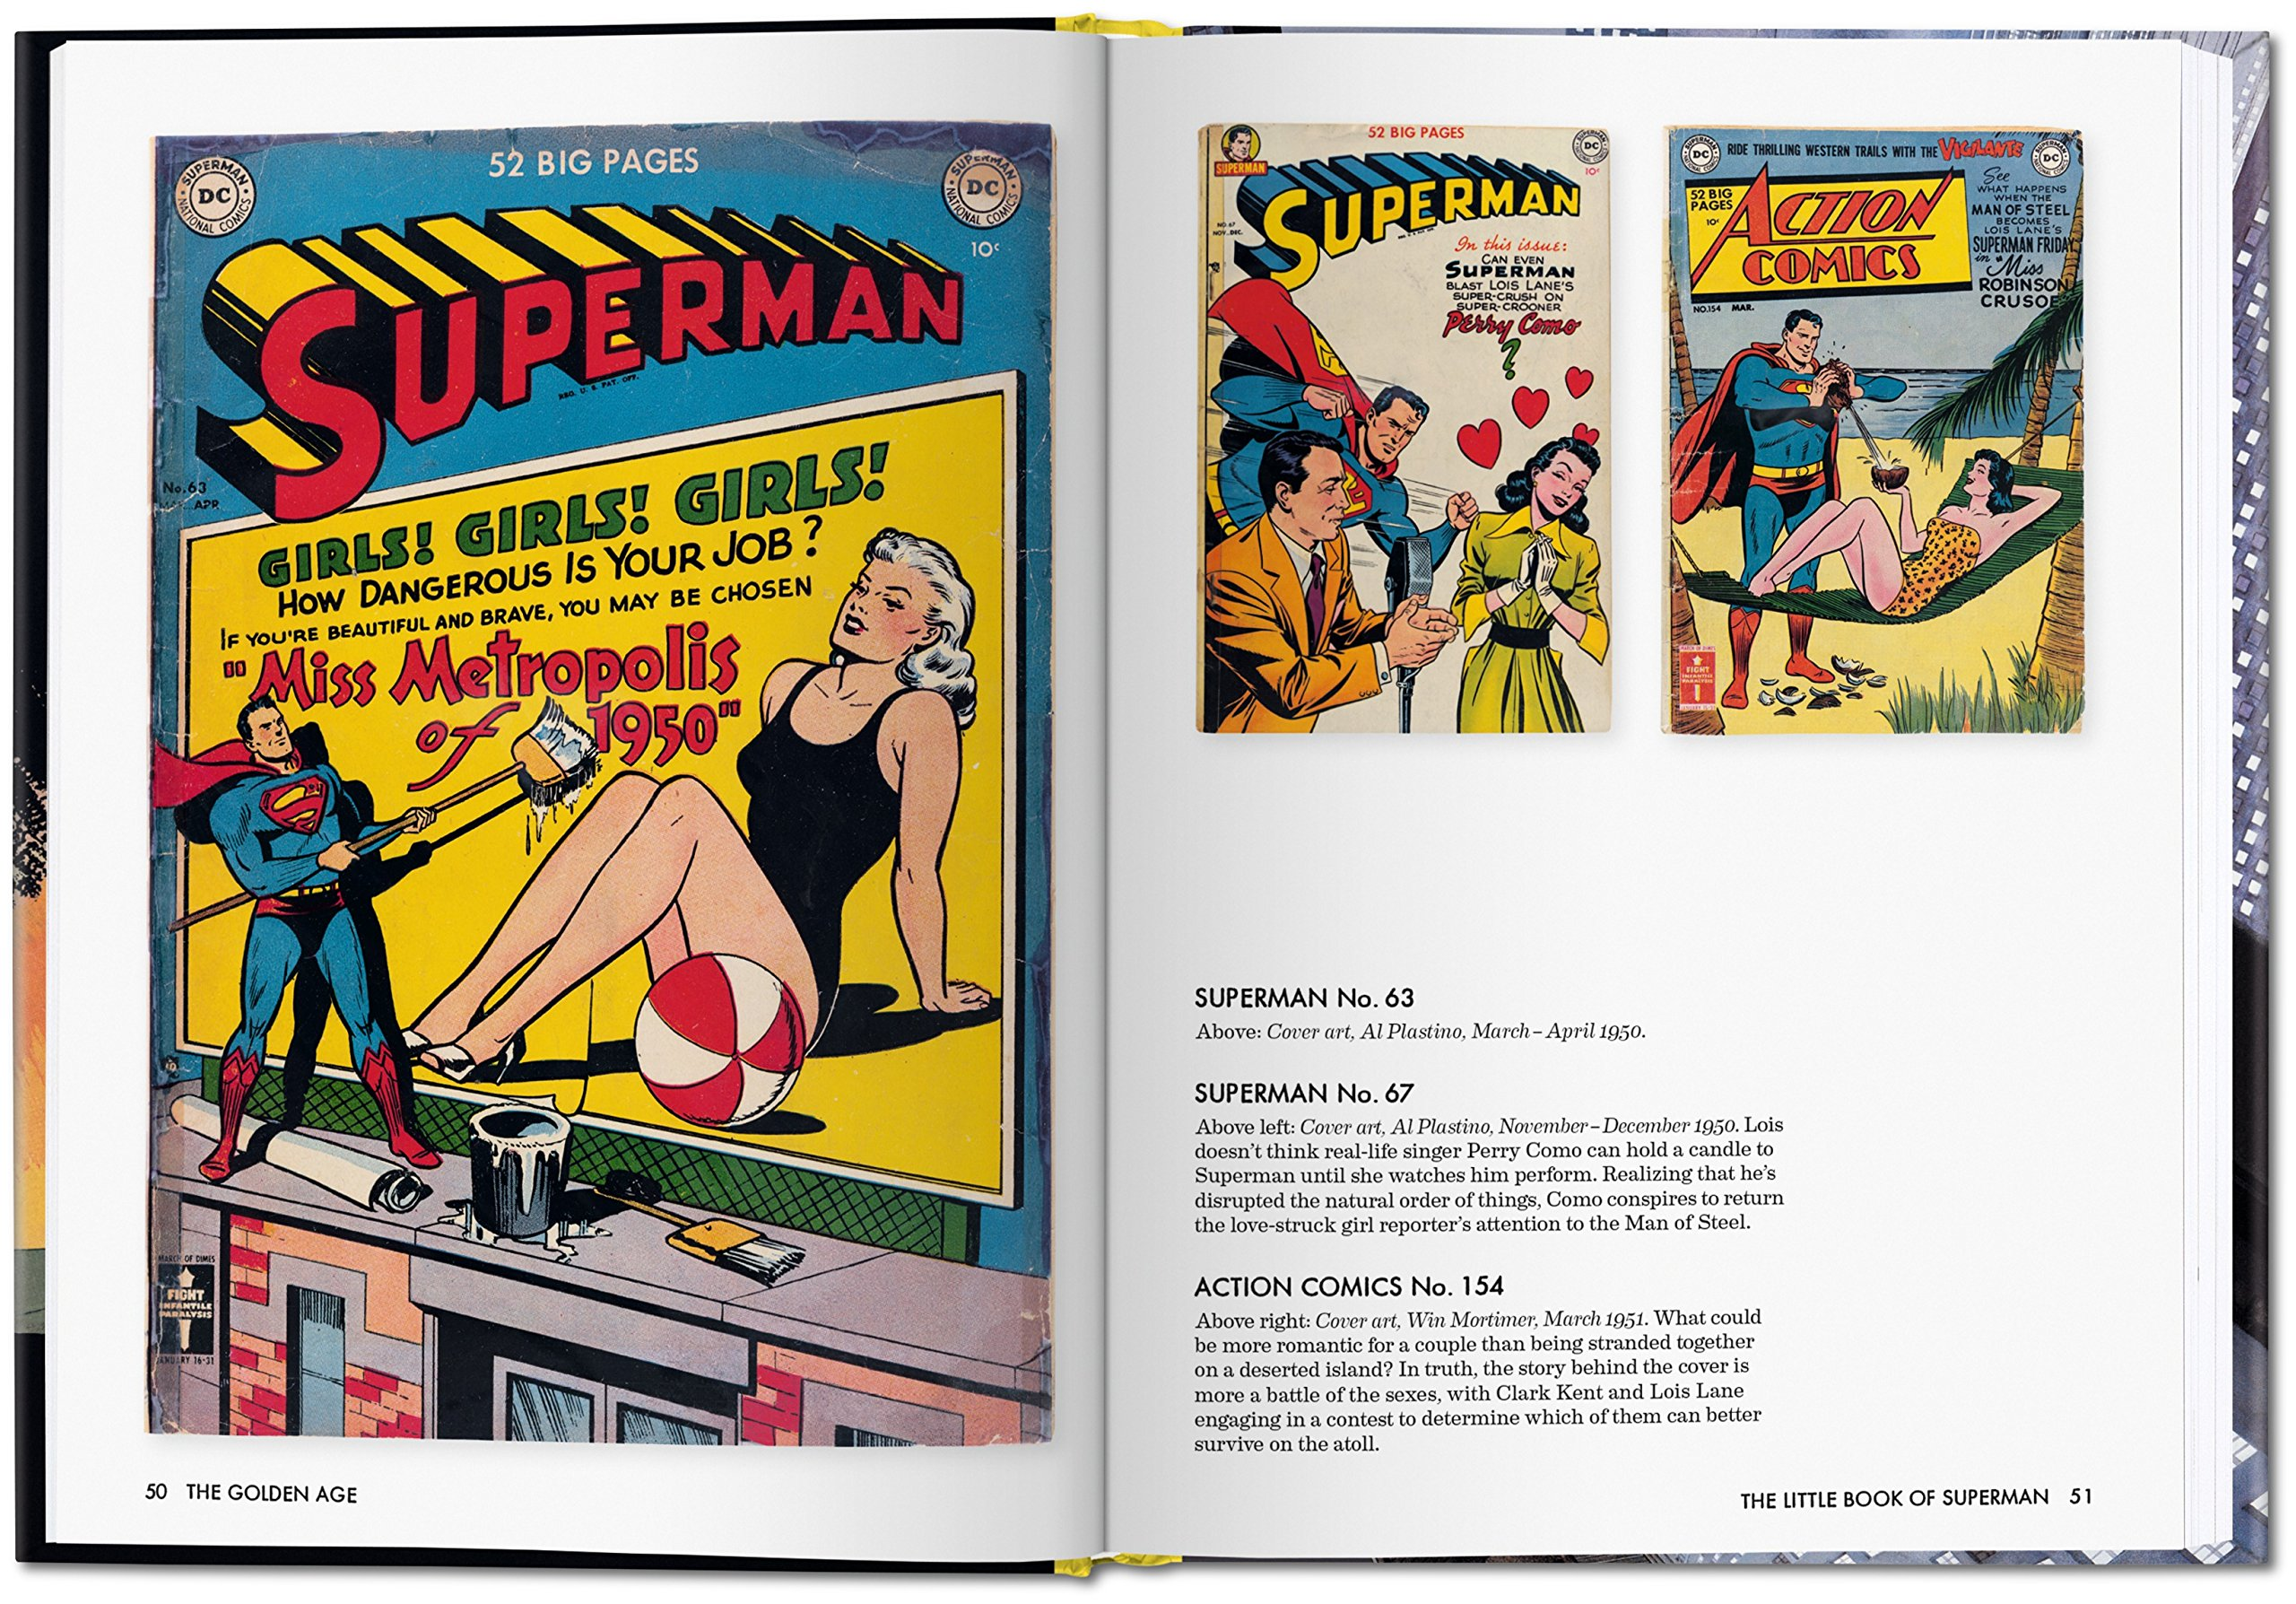 Amazoncom The Little Book Of Superman Dc Comics English - 21 designer problems turned into funny comics that tell the absolute truth